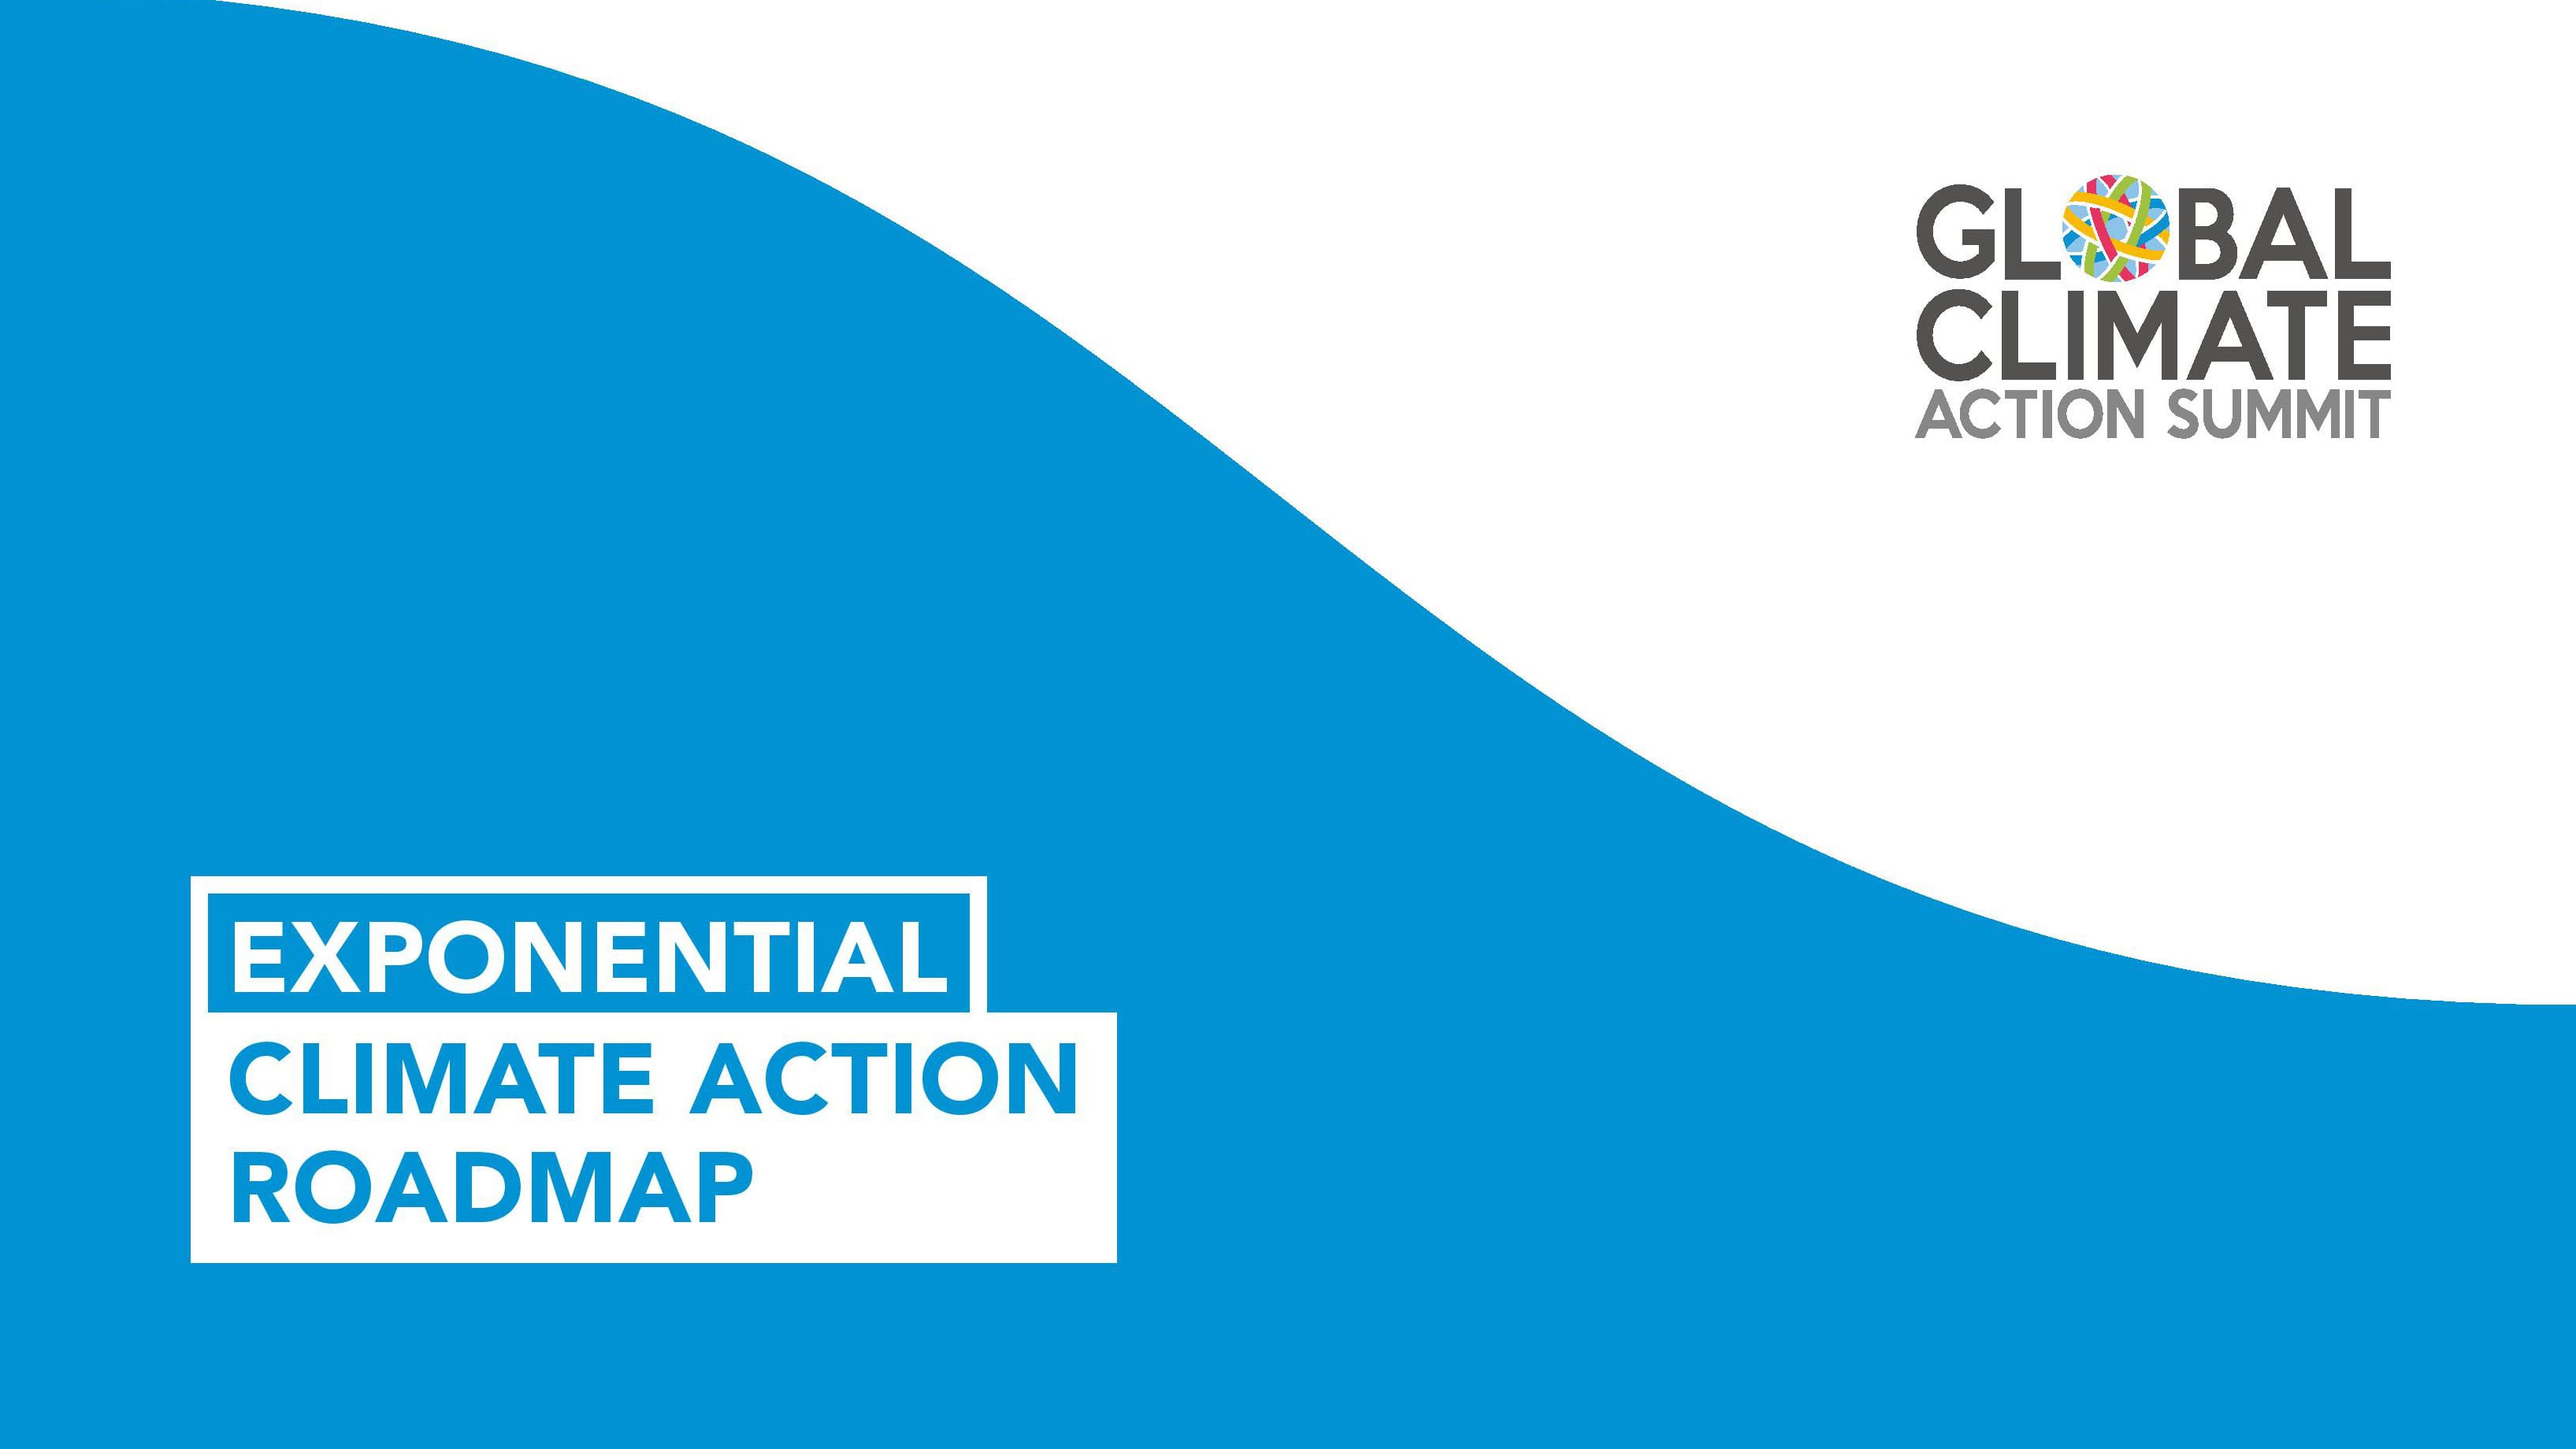 We are proud to announce that MapLauncher is supporting partner of the Exponential Climate Action Roadmap, a report that aims to show that all sectors of the global economy have potential to rapidly halve emissions of greenhouse gases with existing technologies and changing behaviour. The roadmap, that is soon going to be launched at the Global Climate Action Summit (GCAS) will become accessible as an online digital report on the MapLauncher platform.